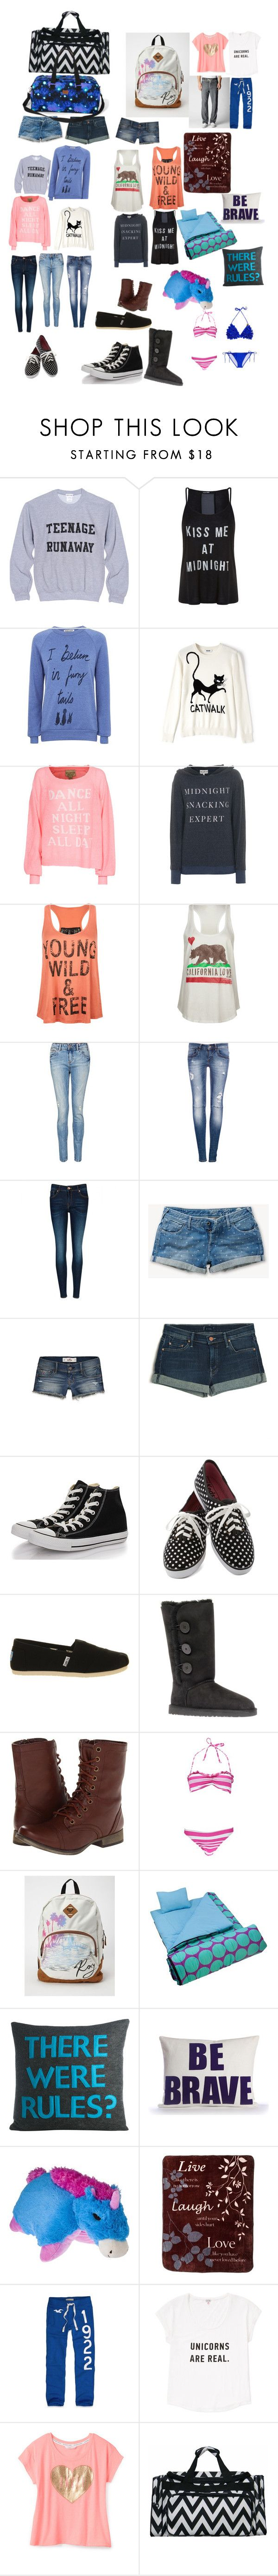 """""""Camping with R5 #1 : my bags"""" by brittr5 ❤ liked on Polyvore featuring Simeon Farrar, Moschino Cheap & Chic, Wildfox, Full Tilt, Billabong, Pull&Bear, Ted Baker, Jack Wills, Hollister Co. and Mother"""